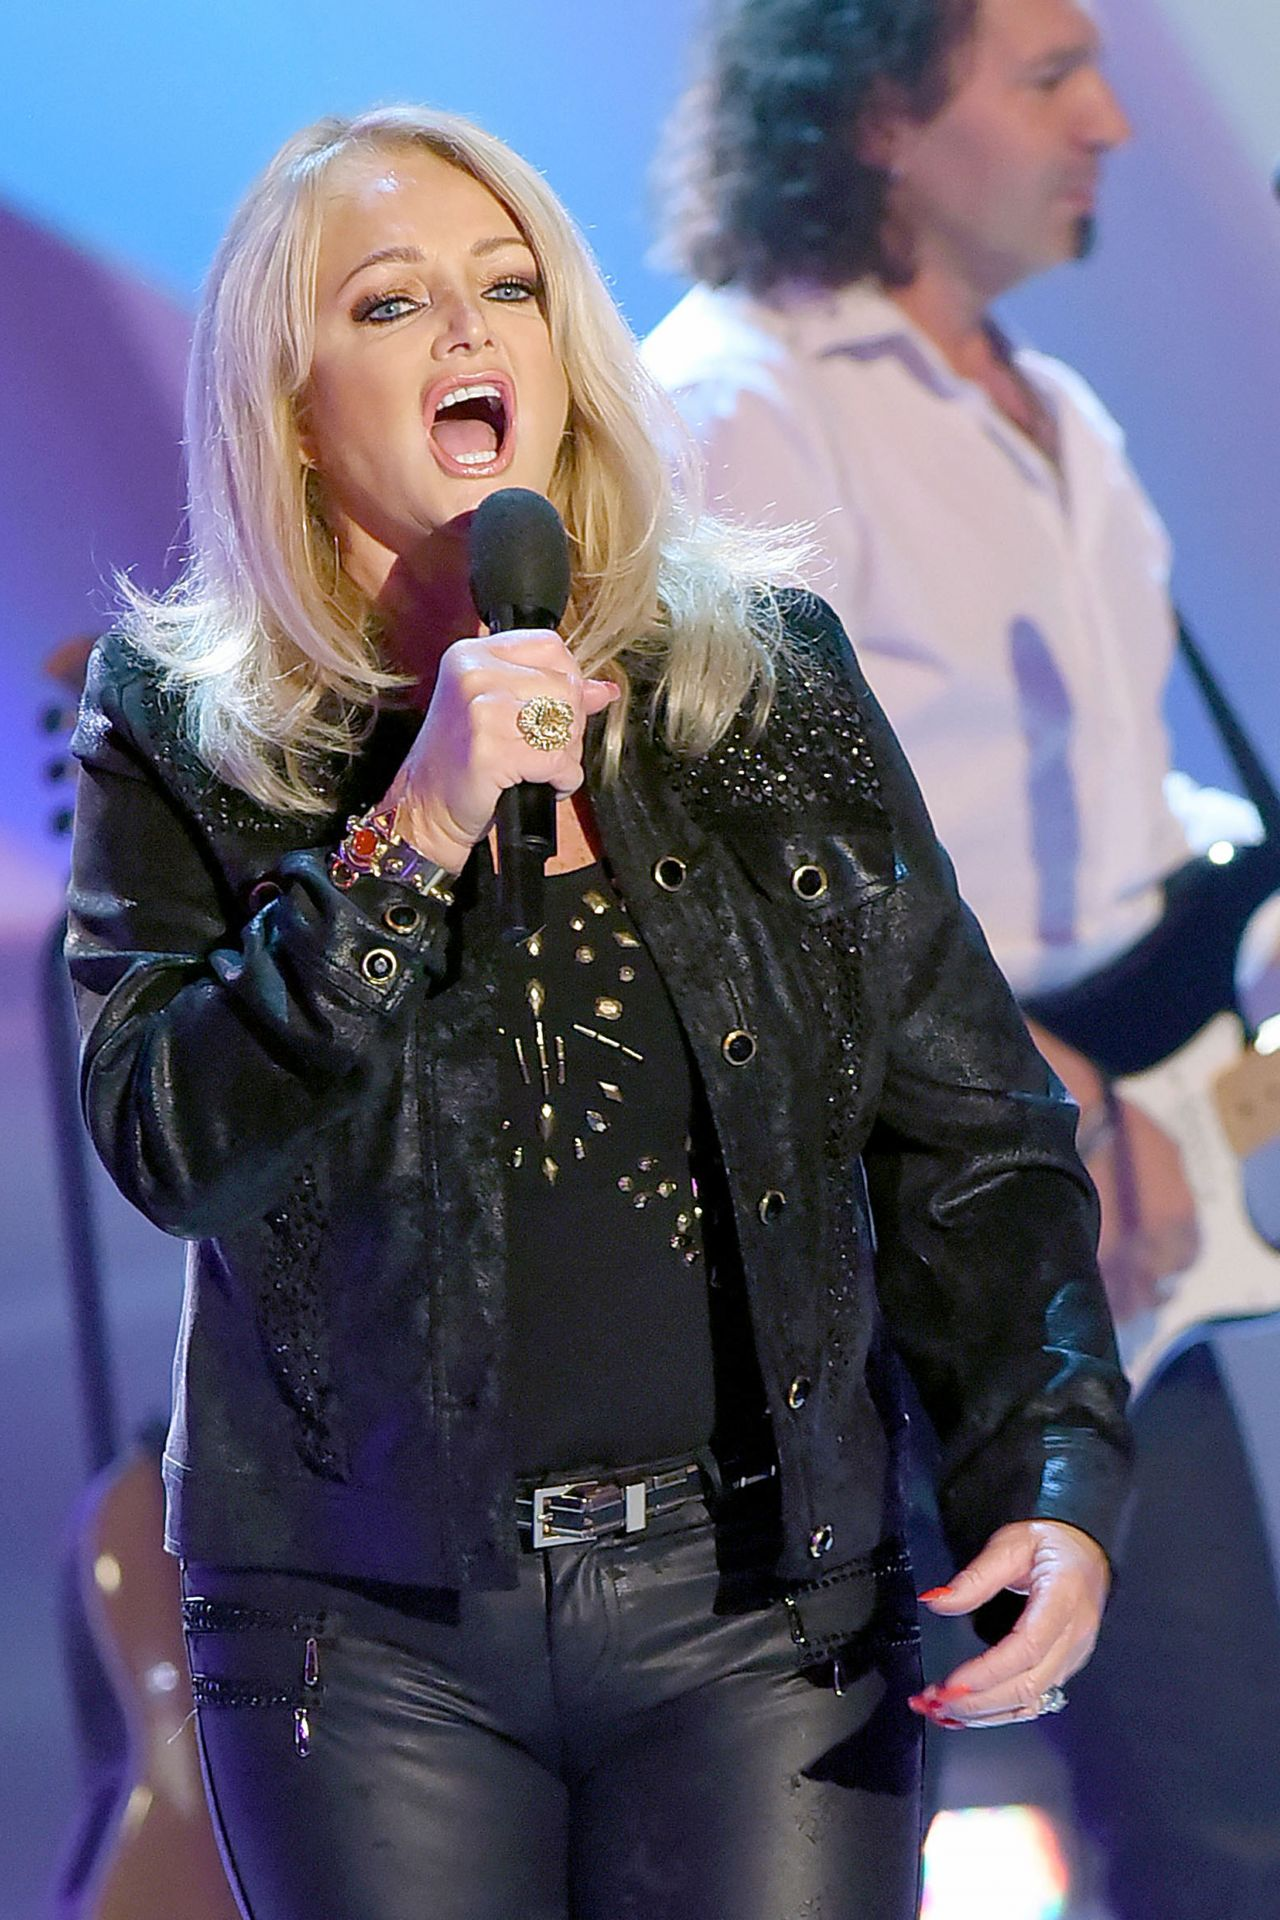 bonnie tyler - photo #14